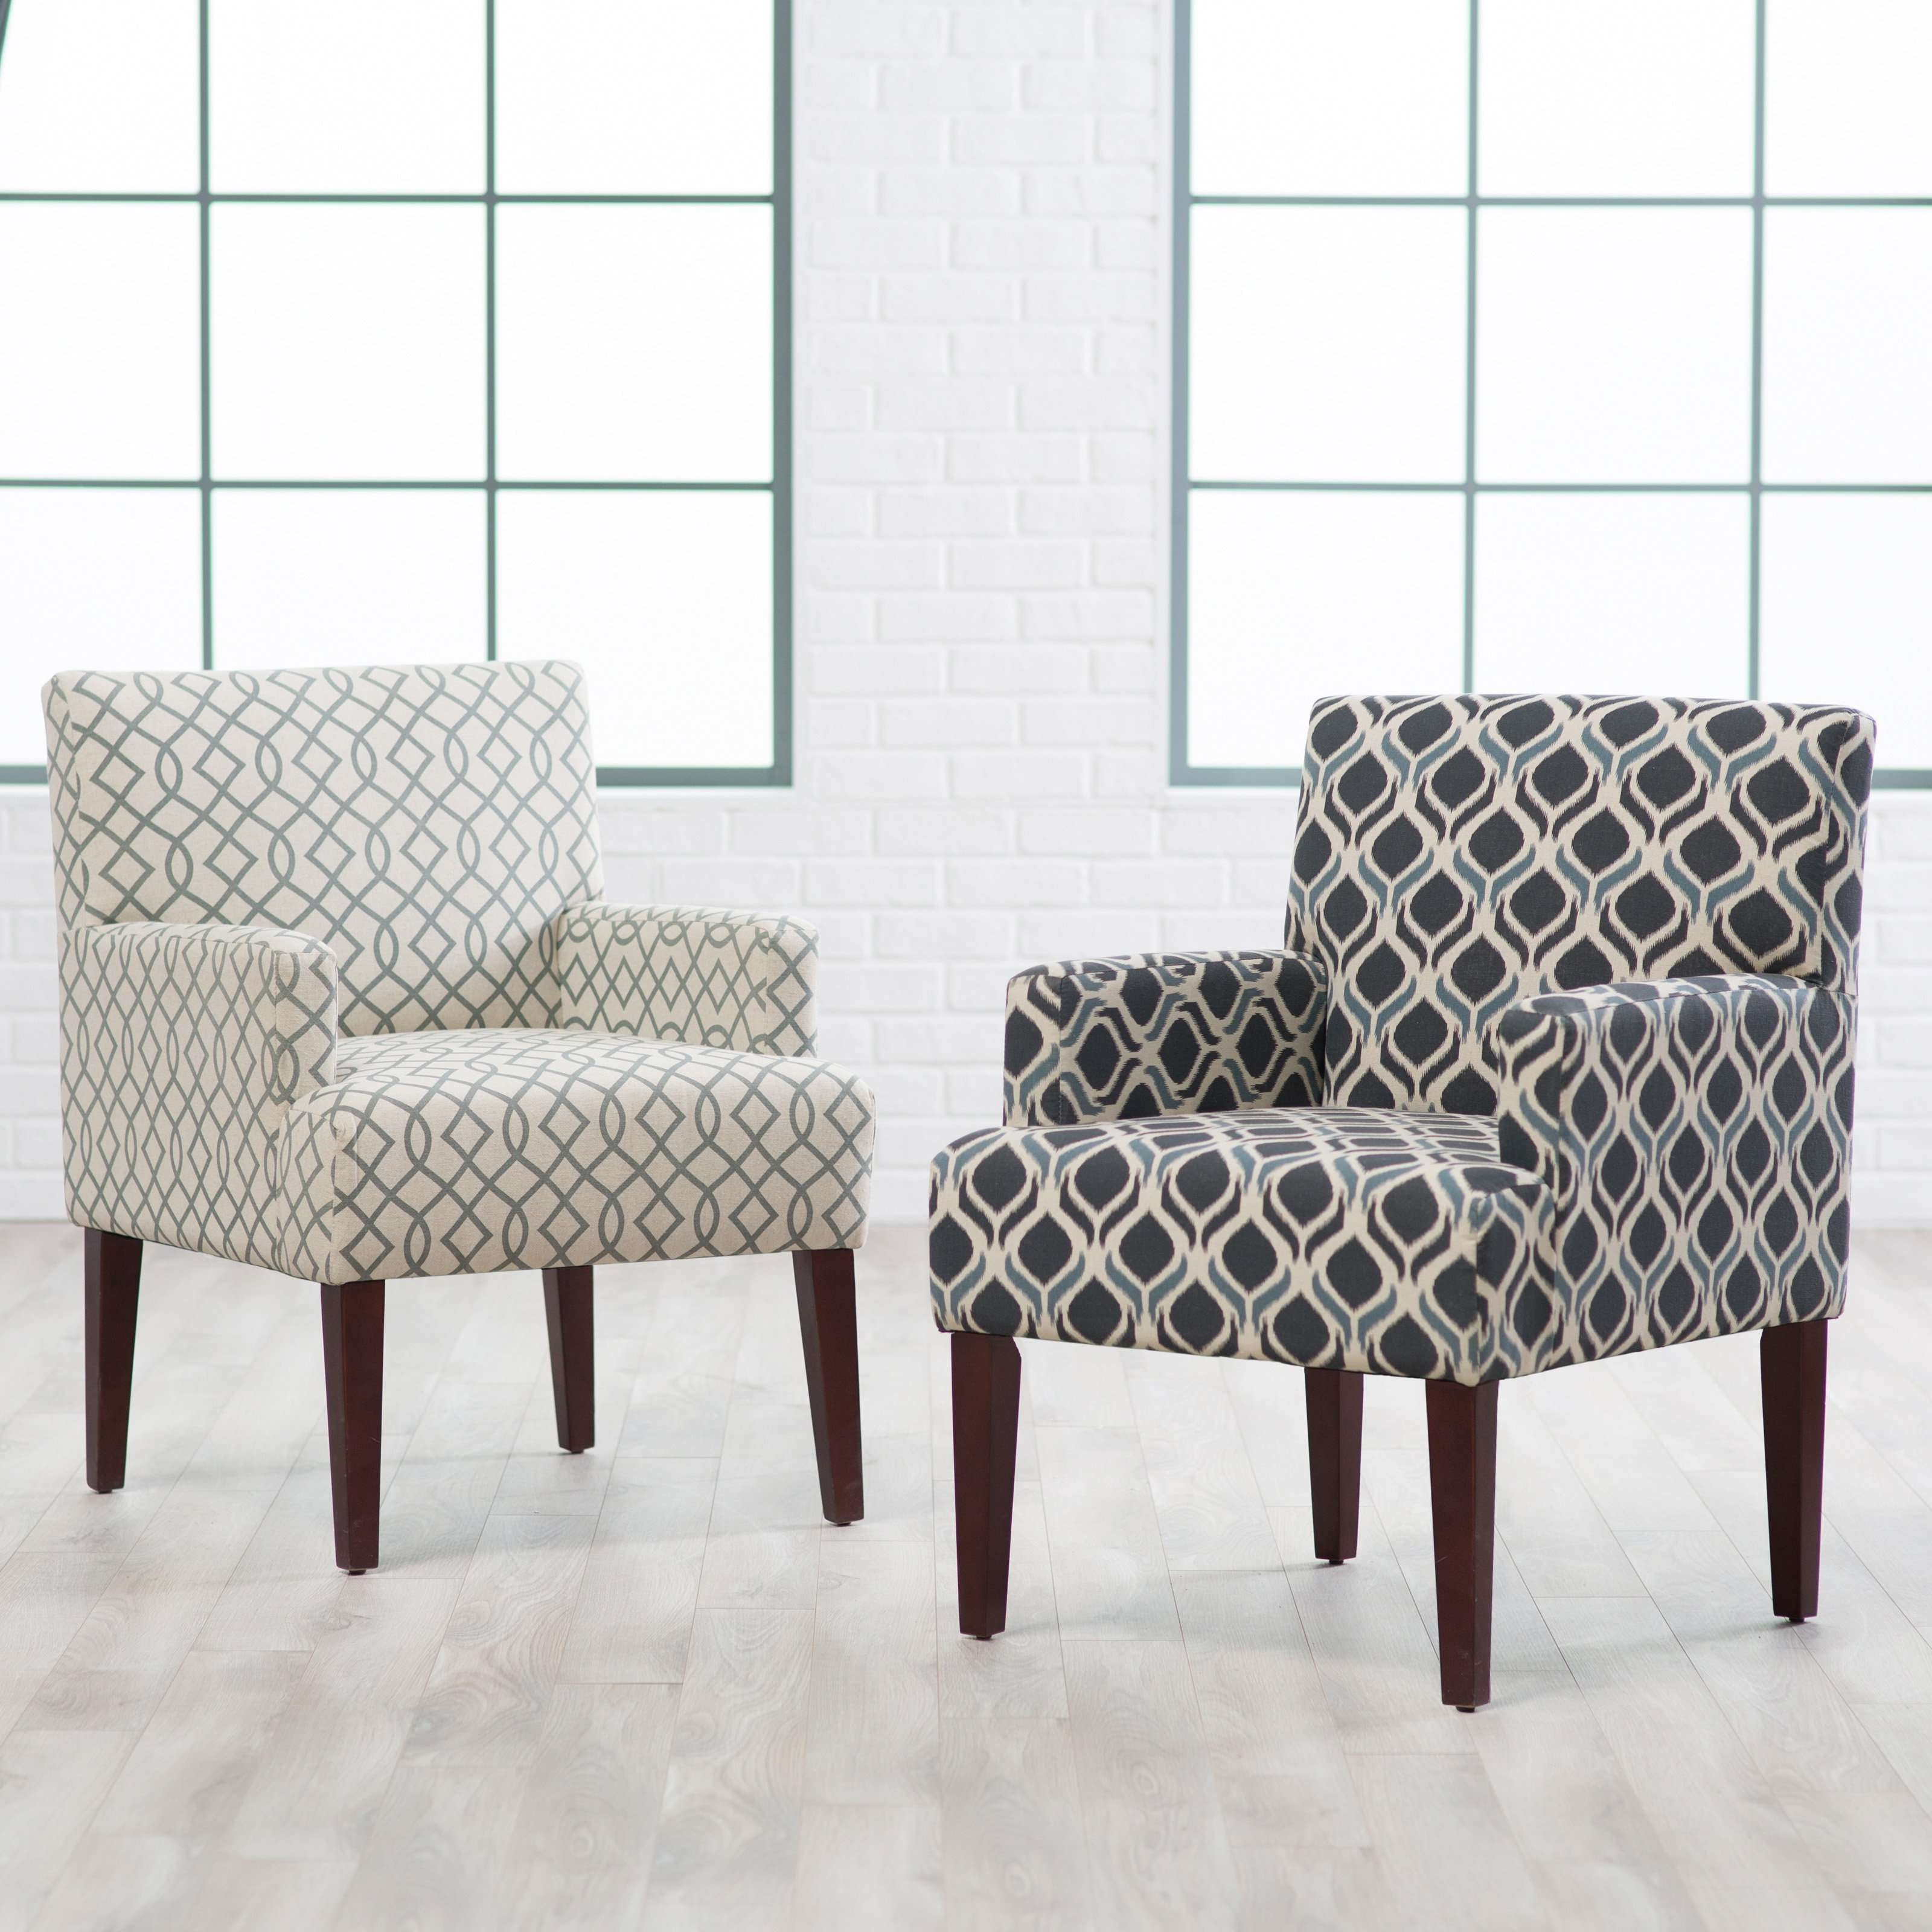 Accent Chairs With Arms Under 100 Luxury Bedroom Chairs For Small For Well Known Rocking Chairs For Small Spaces (View 3 of 15)